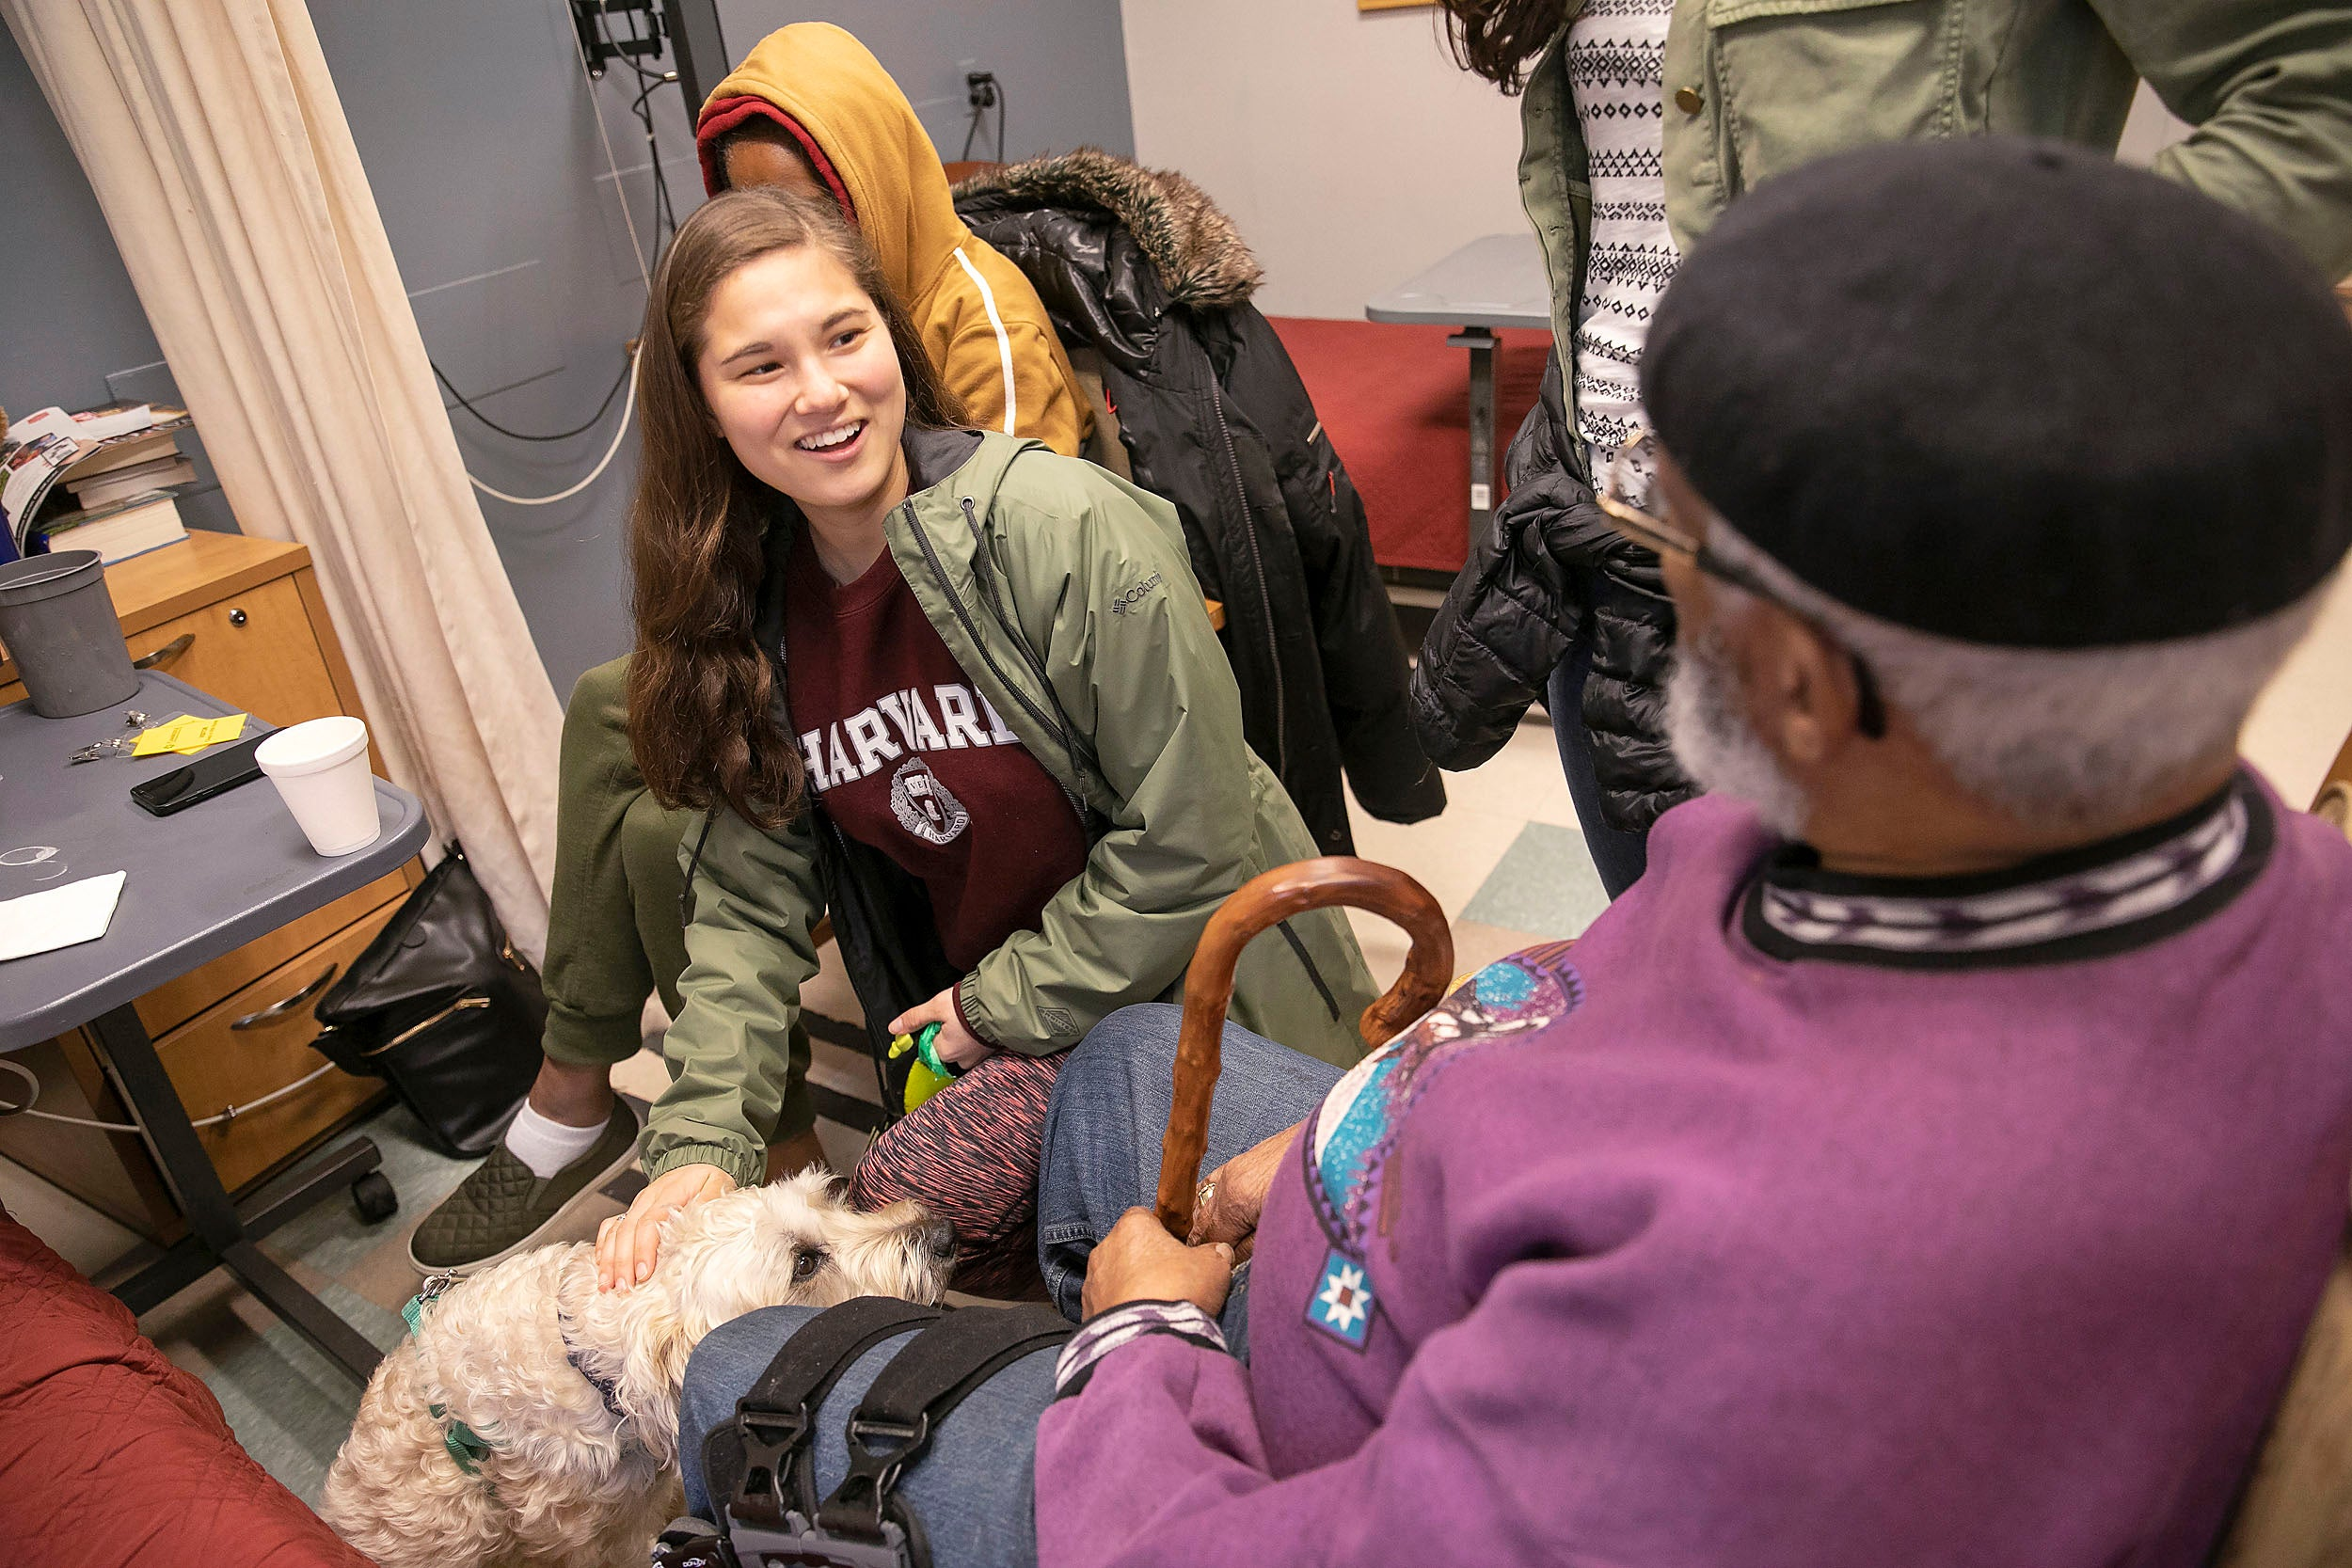 Student and dog visiting residents of rehab center.